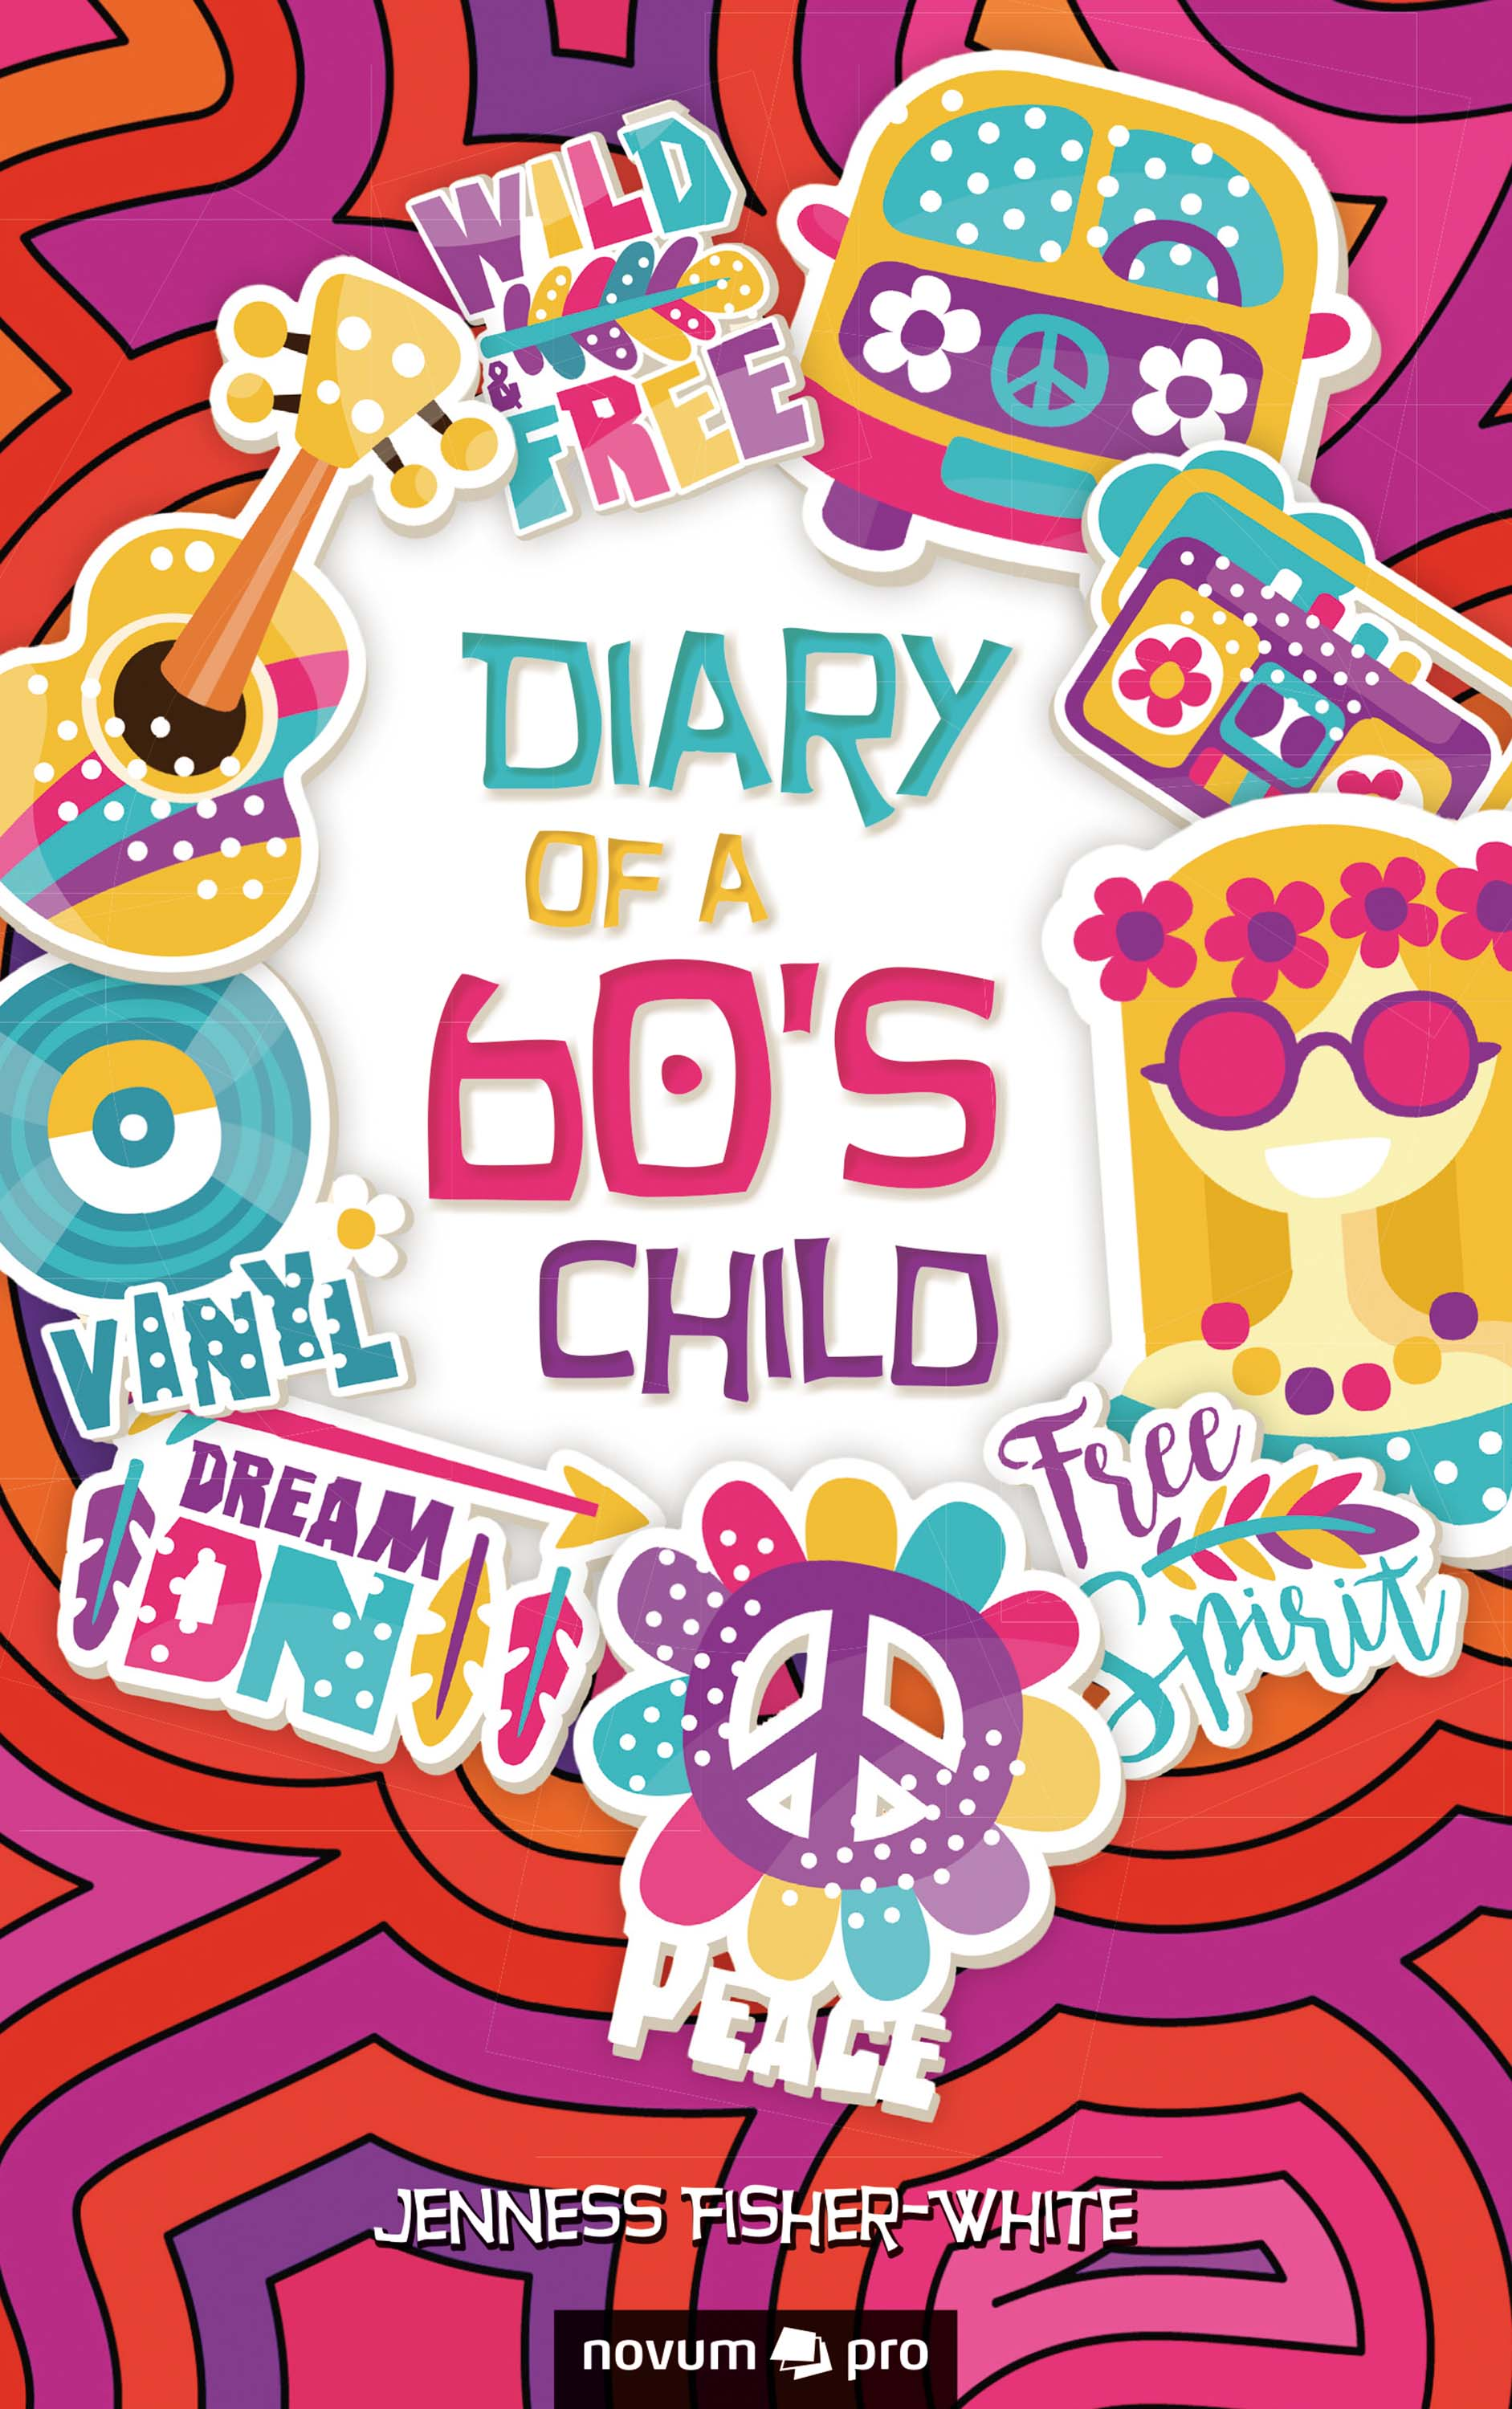 Jenness Fisher-White Diary of a 60's Child xuanxuan diary black s